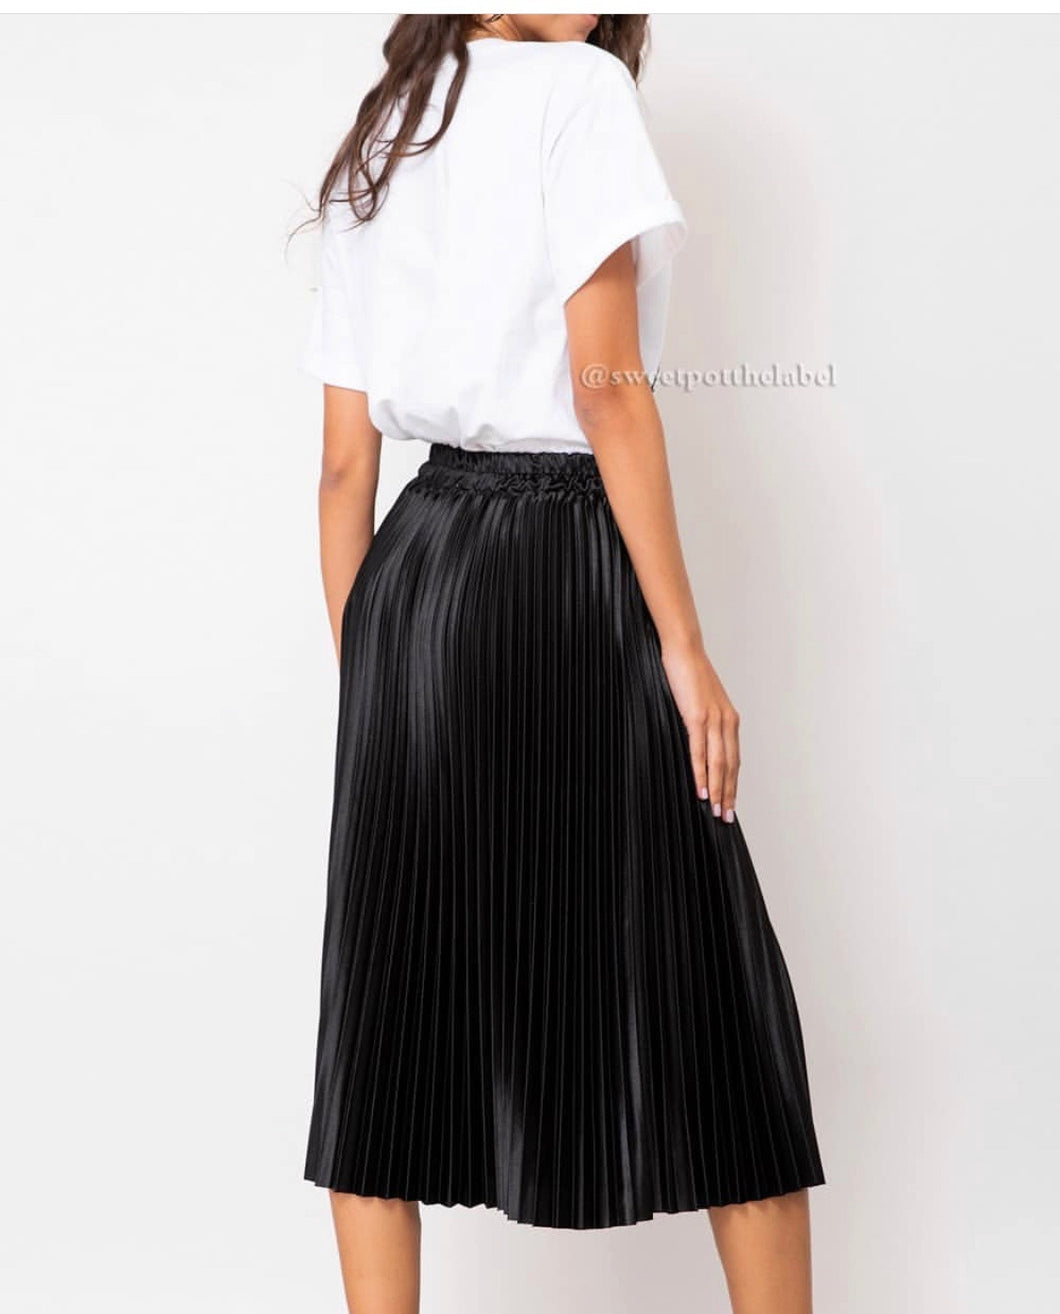 Shirley Skirt- Black